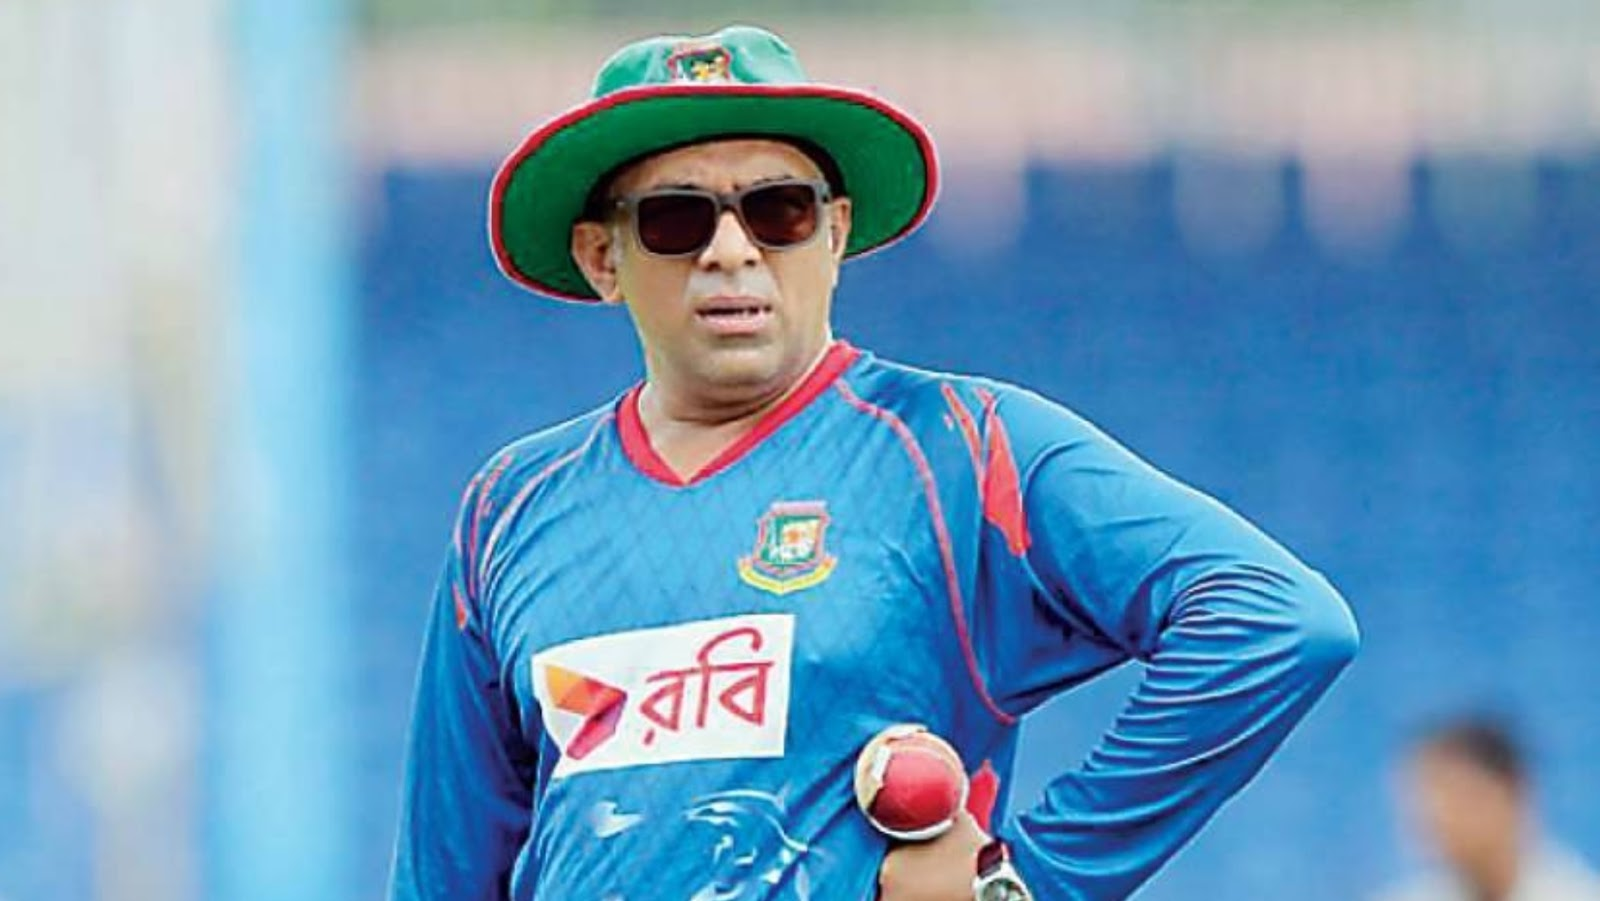 How much bangladesh cricket coach Chandika Hathurusingha earn